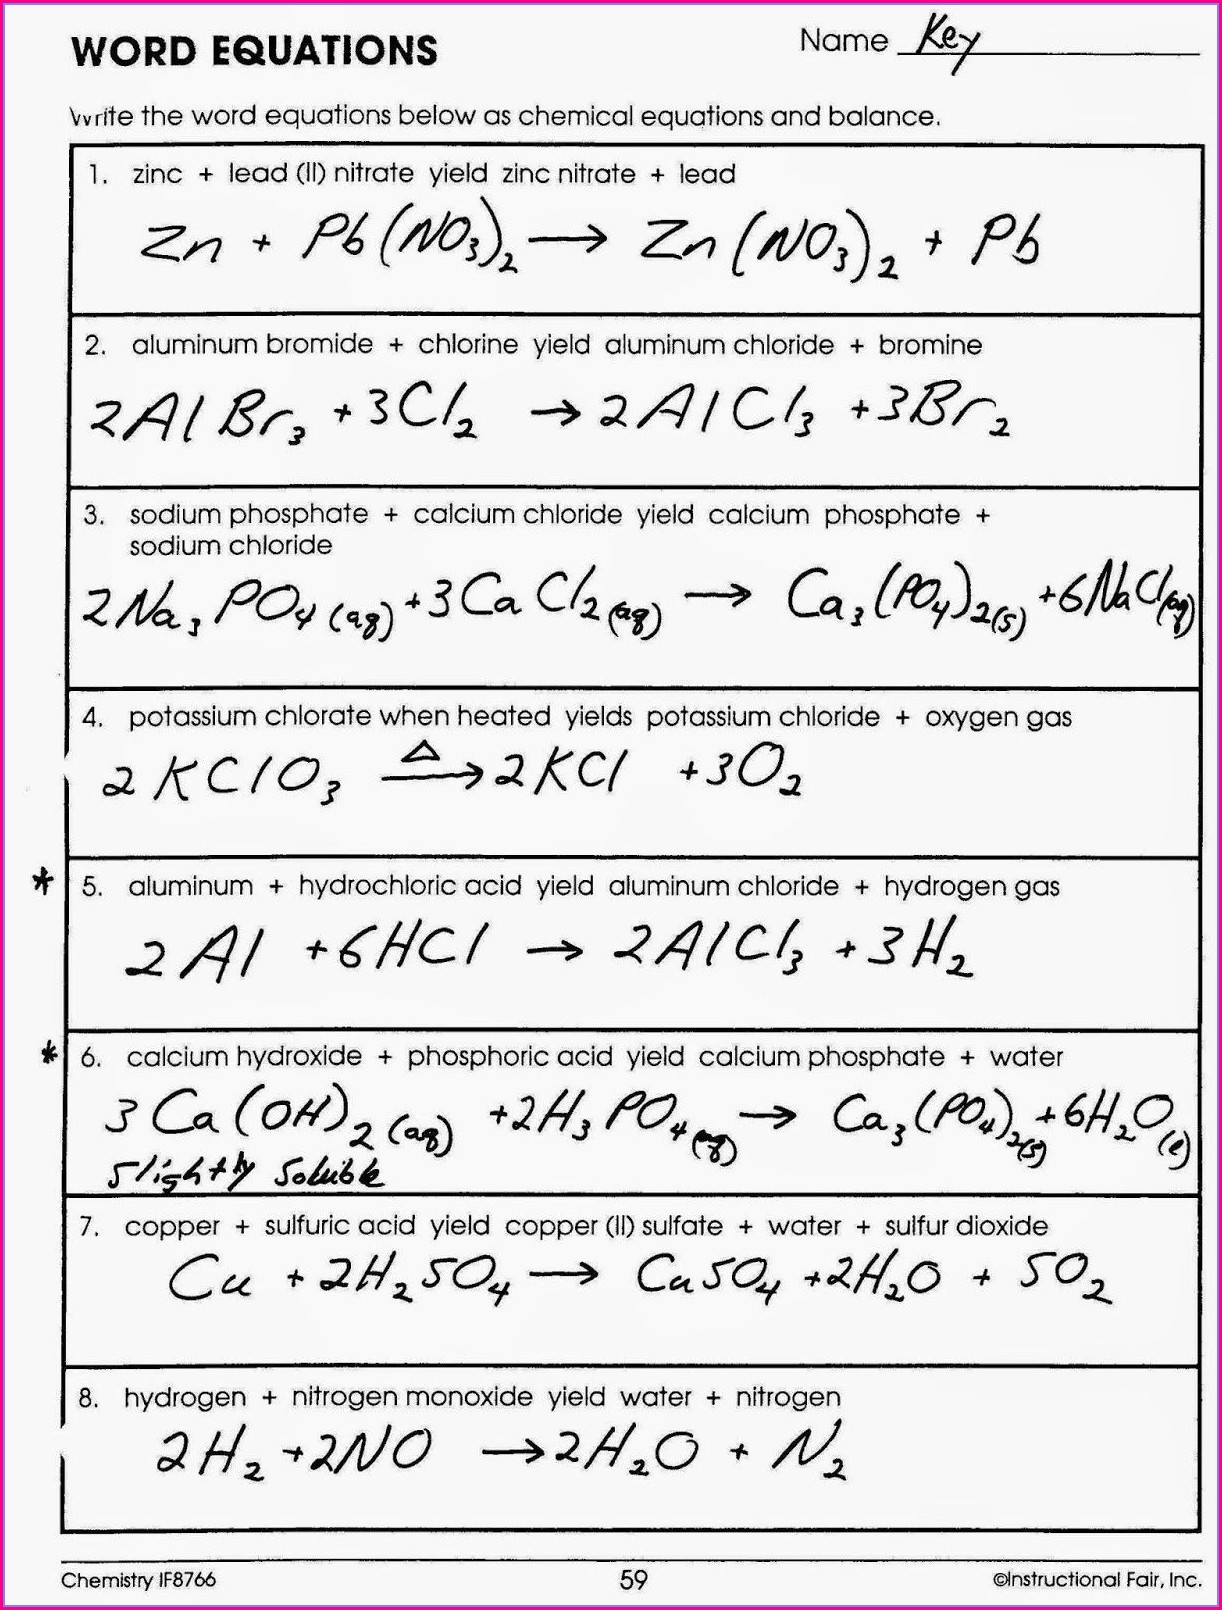 Chemical Word Equations 1 Worksheet Answers